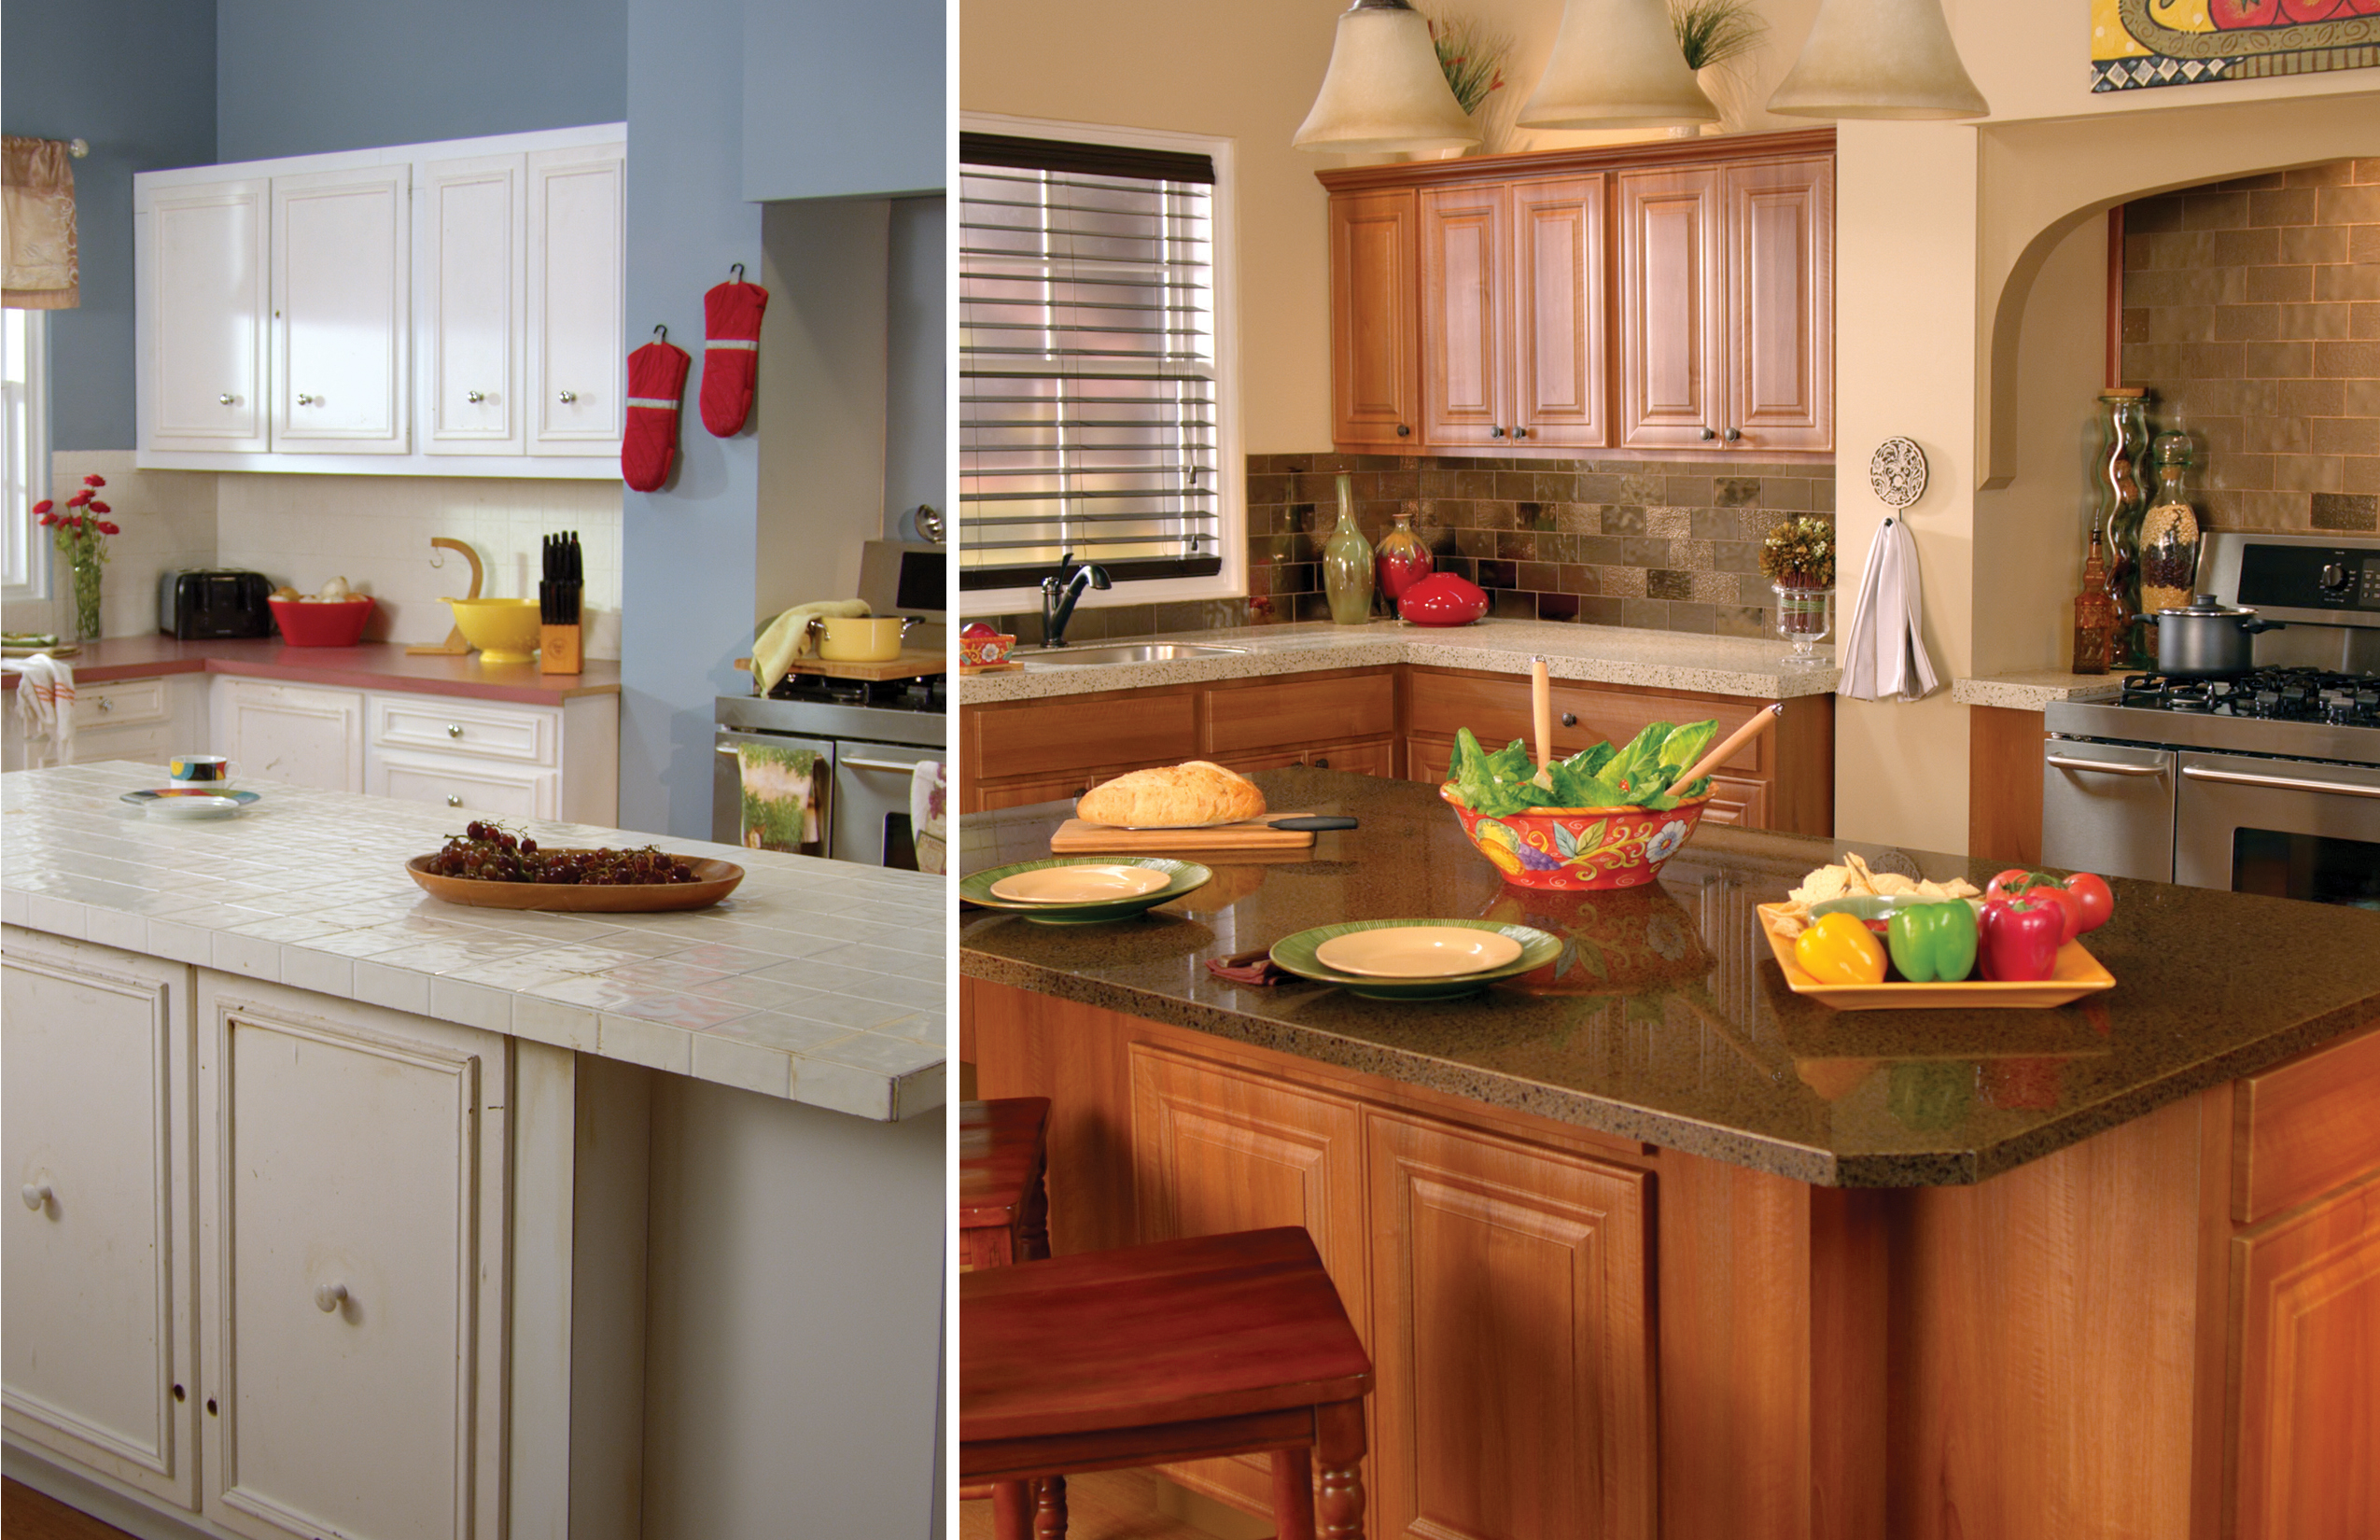 south jersey kitchen remodeling storage boxes granite transformations images before after